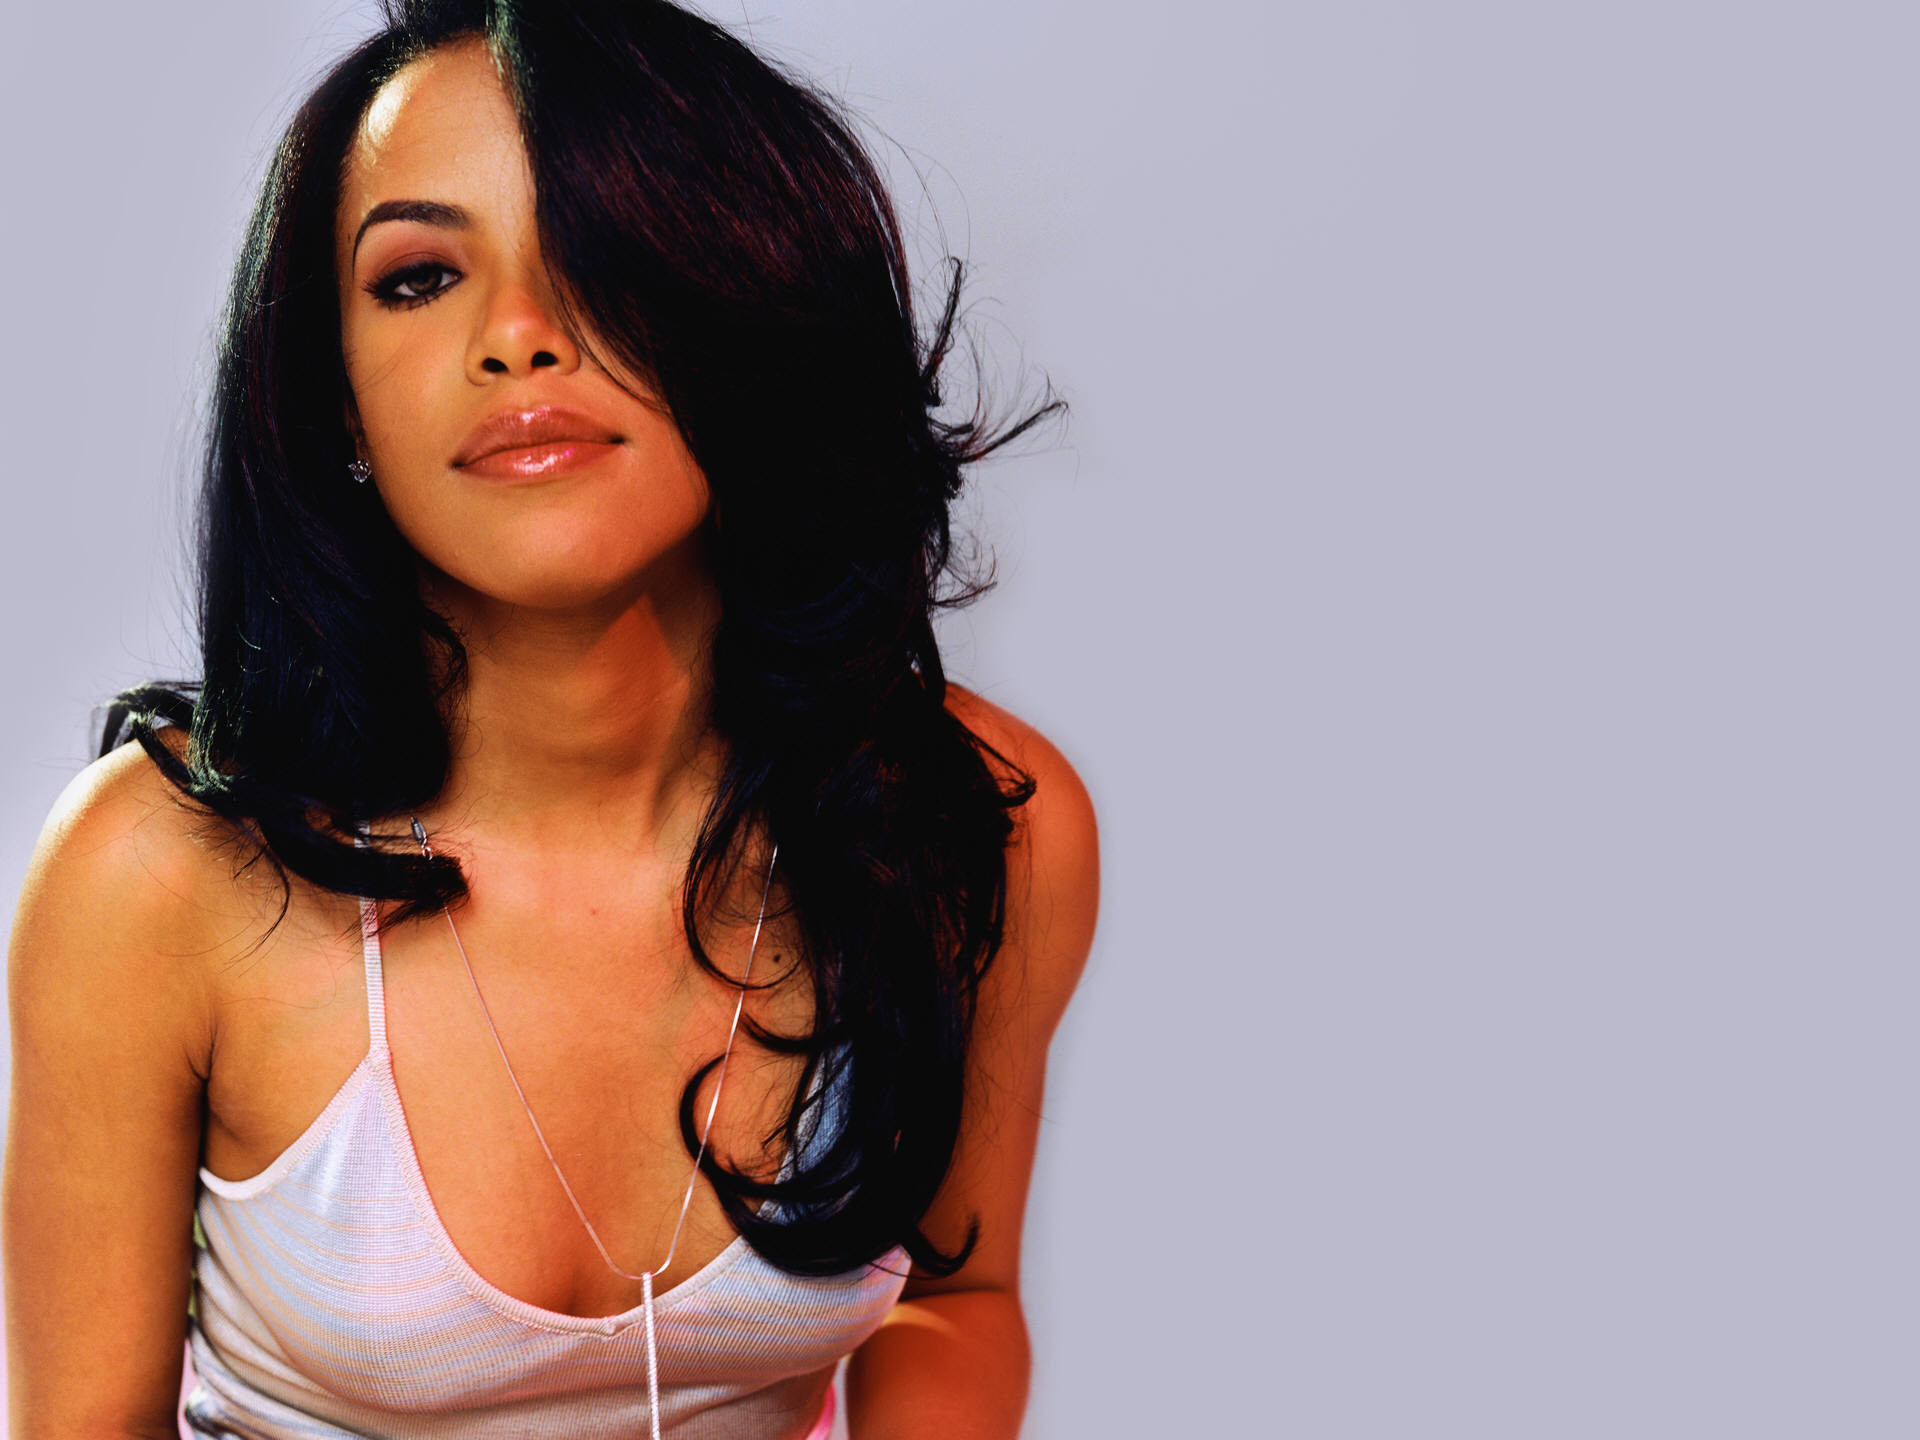 1920x1440 Music from the 90s images Aaliyah HD wallpaper and background photos